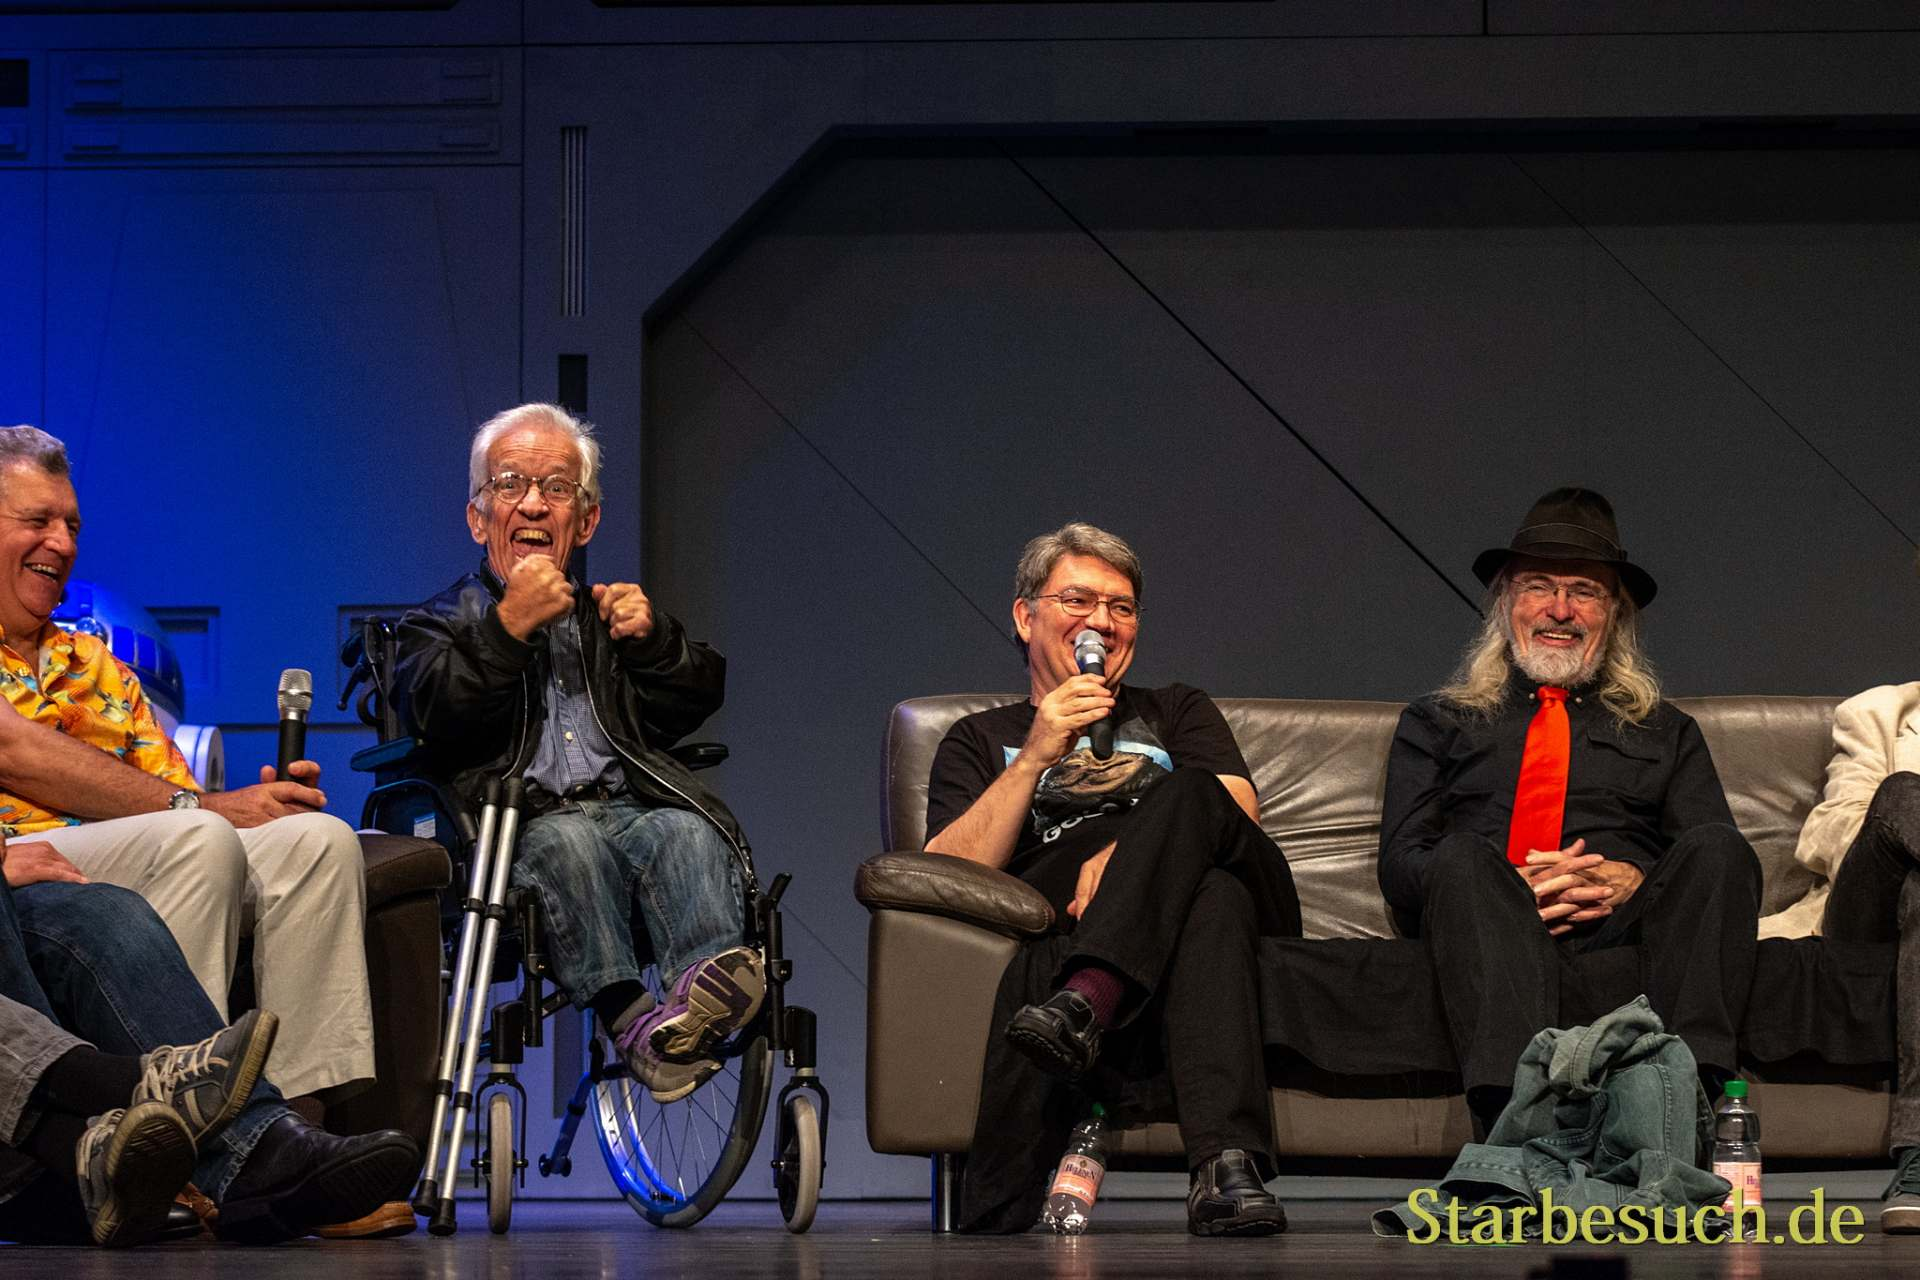 FUERTH, Germany - September 22nd 2018: Tim Rose, Mike Edmonds, Dave Barclay and Toby Philpott at Noris Force Con 5